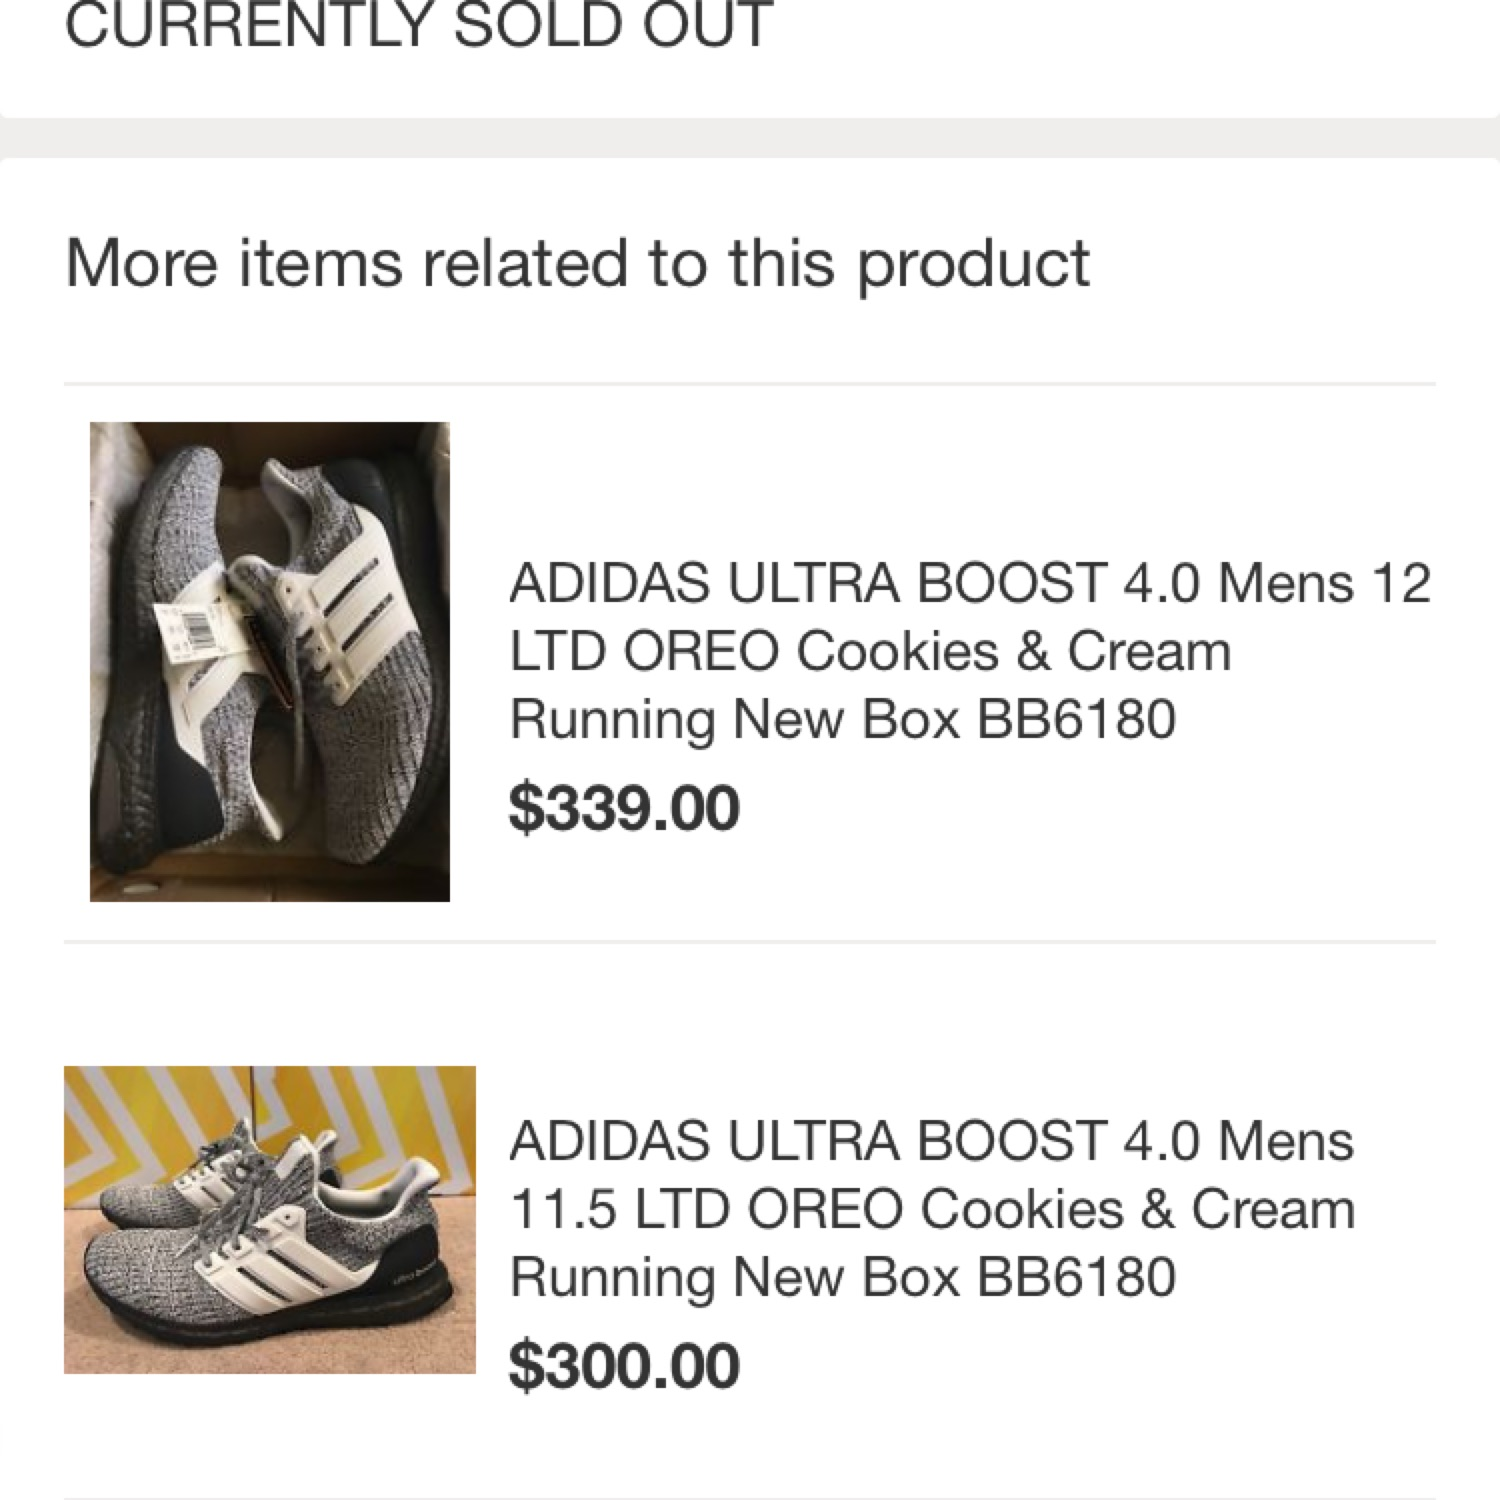 ADIDAS ULTRA BOOST 4.0 Cookies and Cream Men's US Size 11